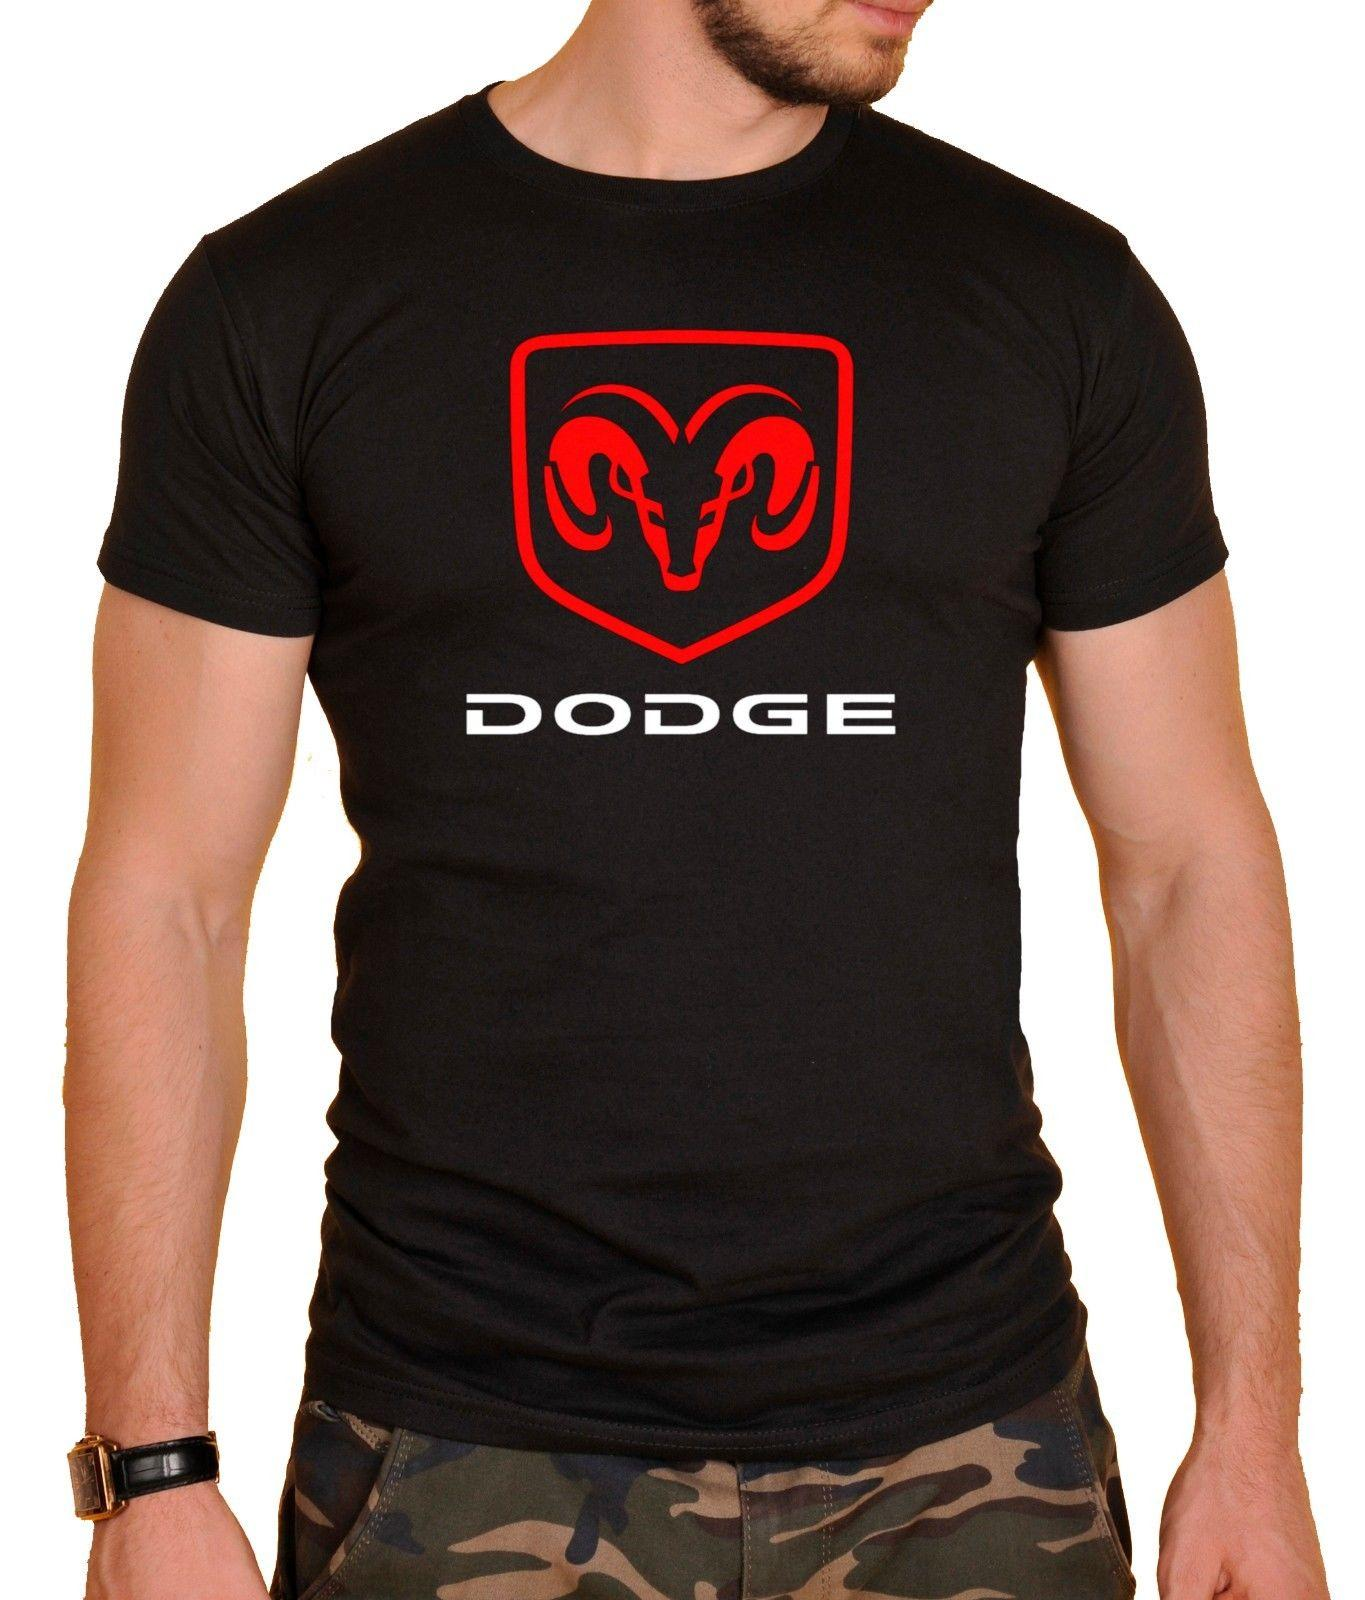 Dodge Logo Cars T Shirt Black New Style Short Sleeve Print Tee Shirt